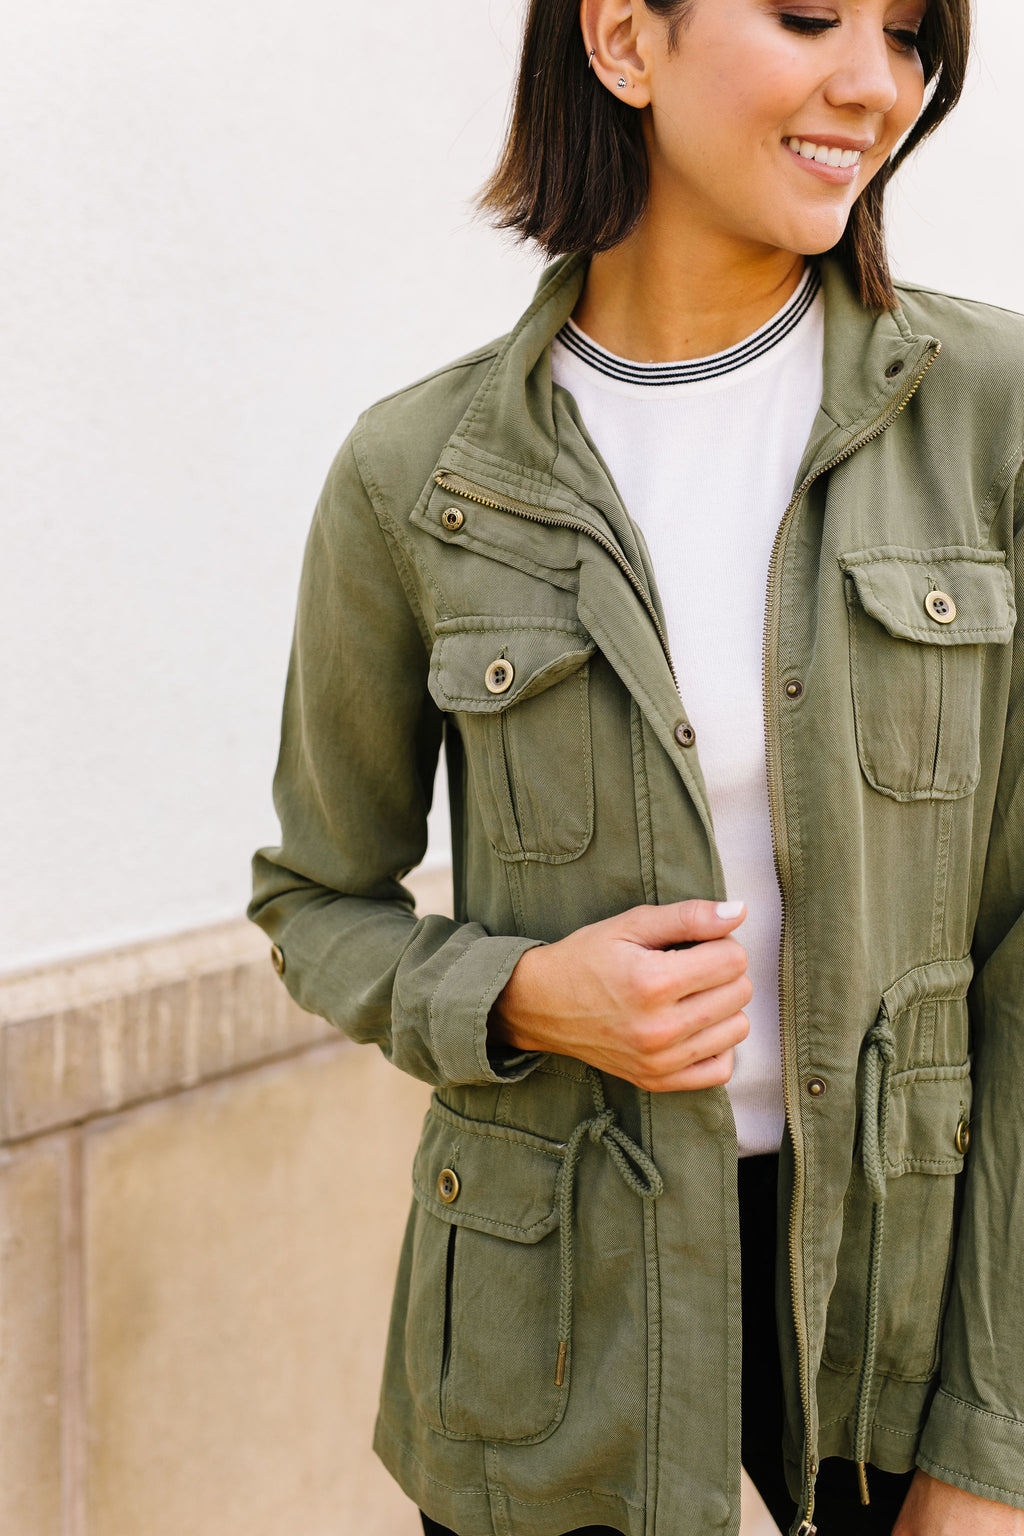 Atlas Tencel Anorak In Olive - 9/26/2019